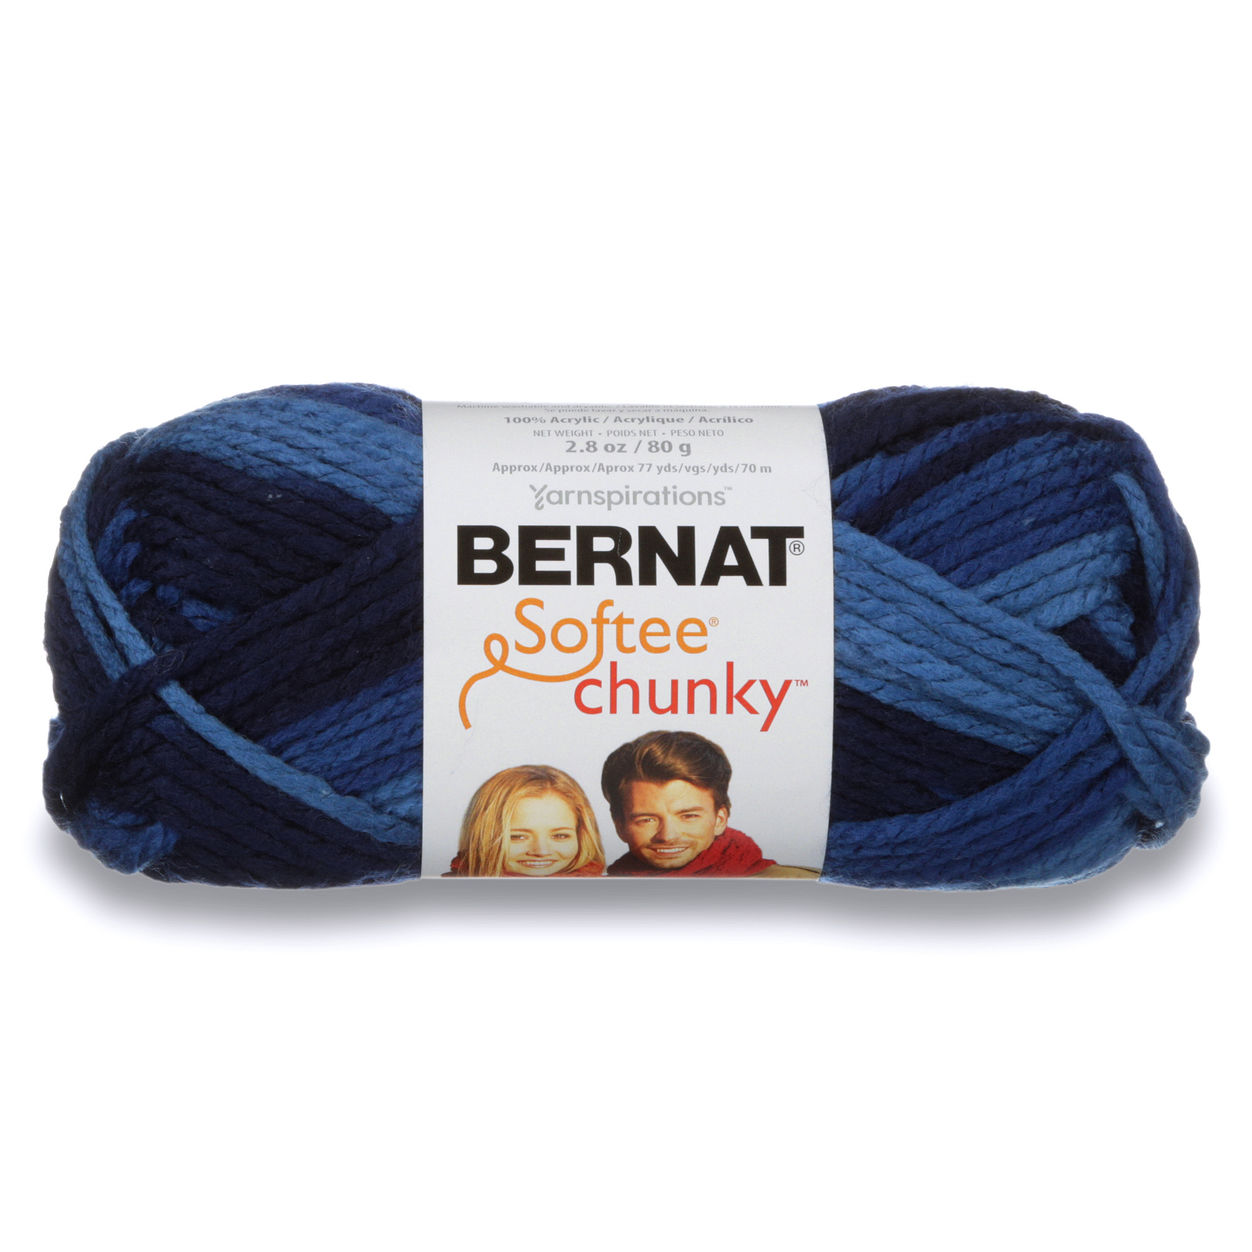 Bernat Softee Chunky Yarn (29119) Denim Ombre